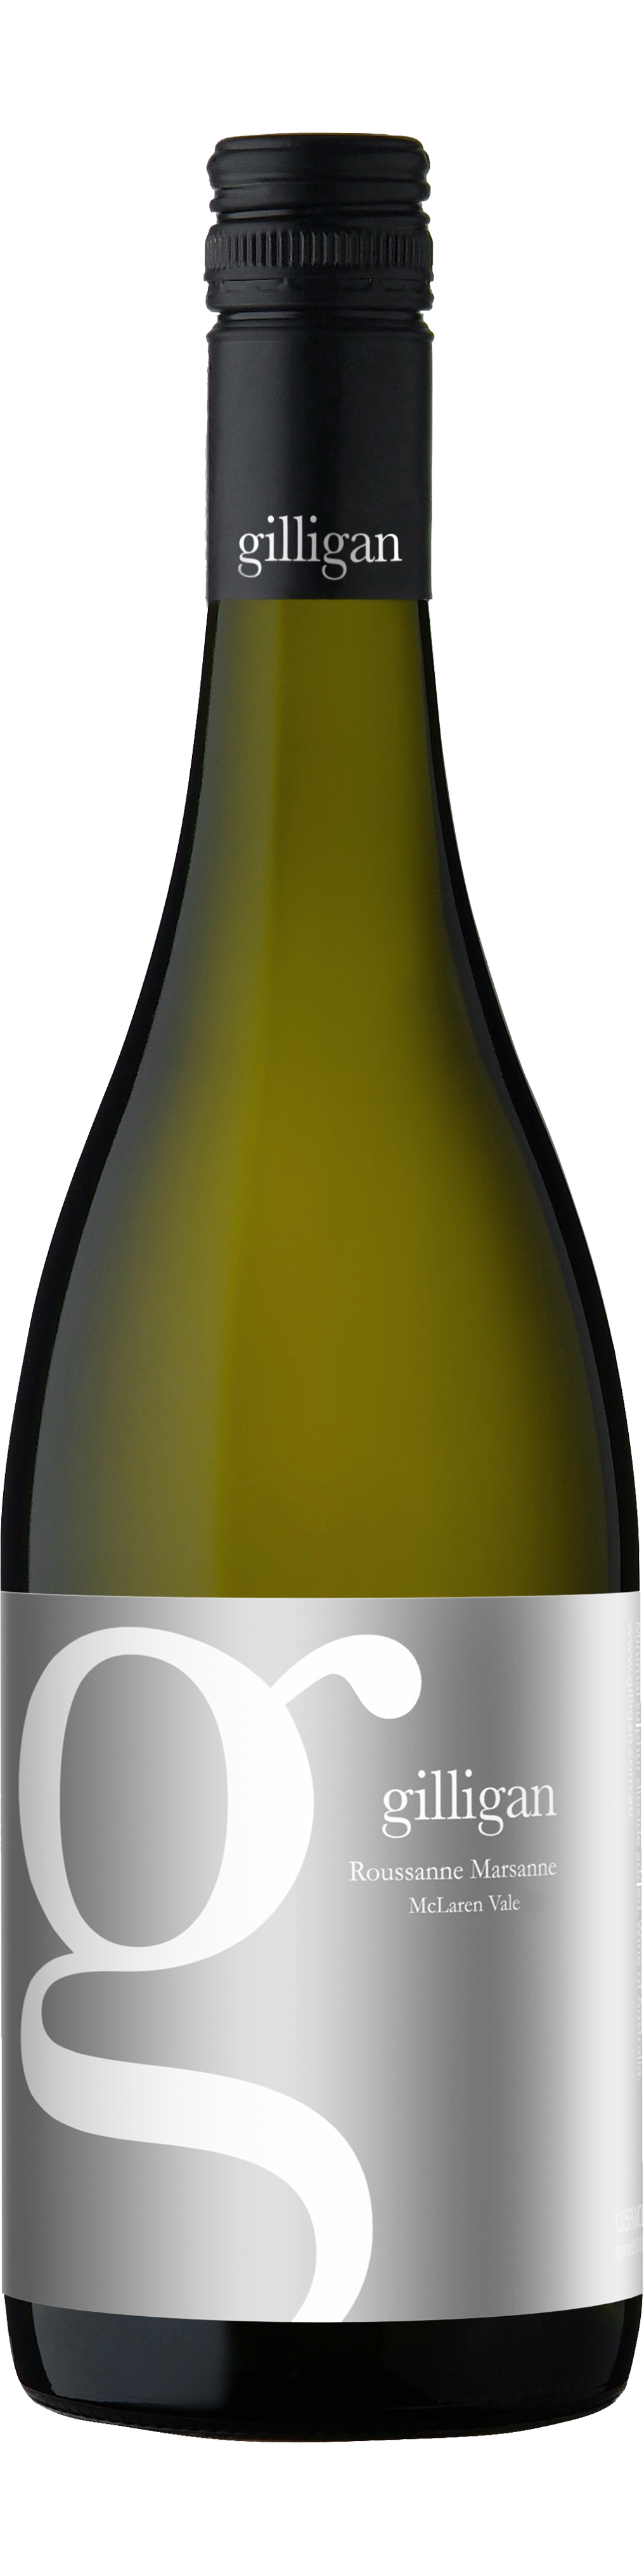 Image of product Roussanne Marsanne